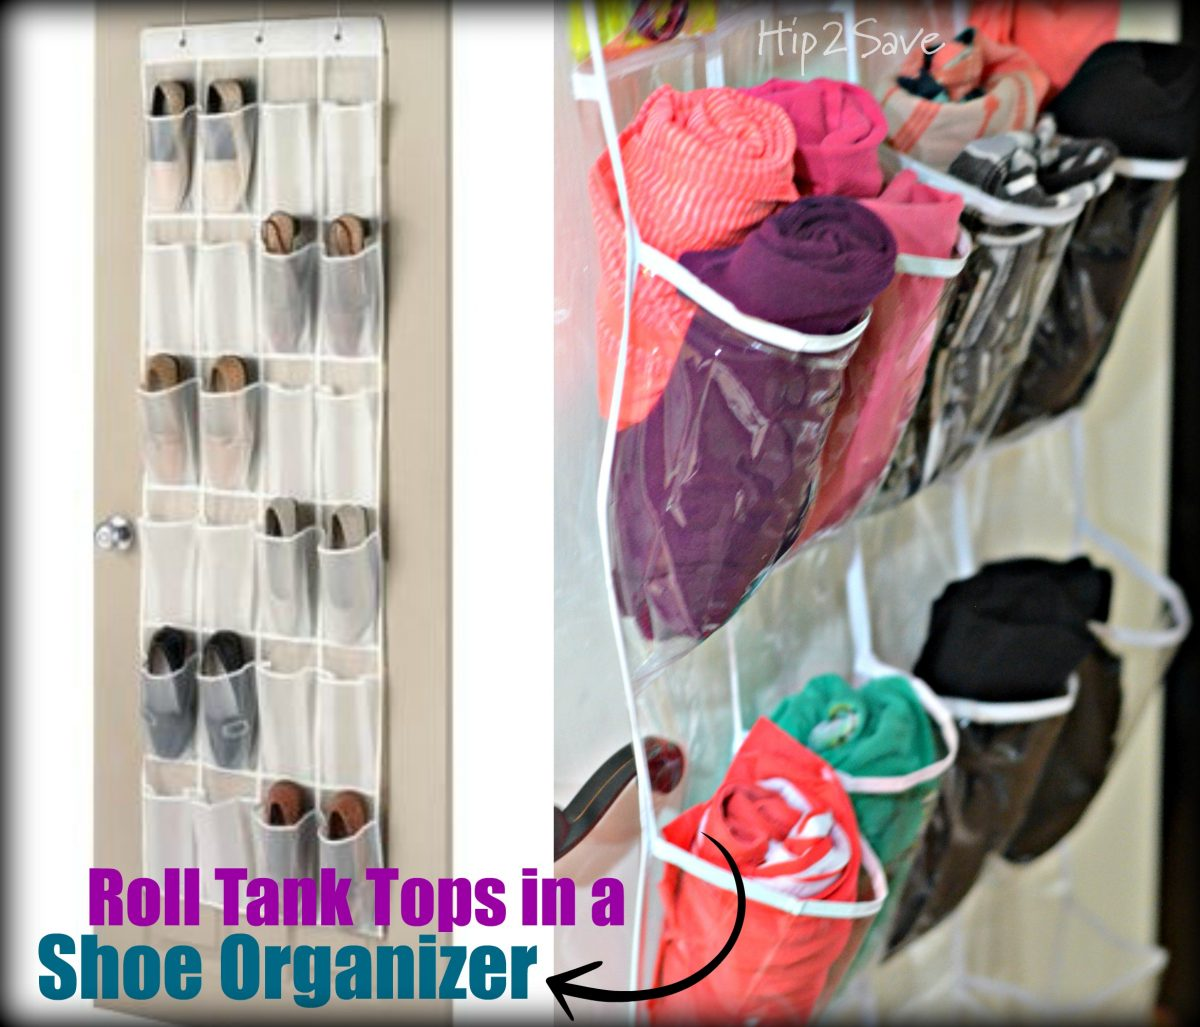 Roll Tank Tops in a Shoe Organizer Hip2Save.com